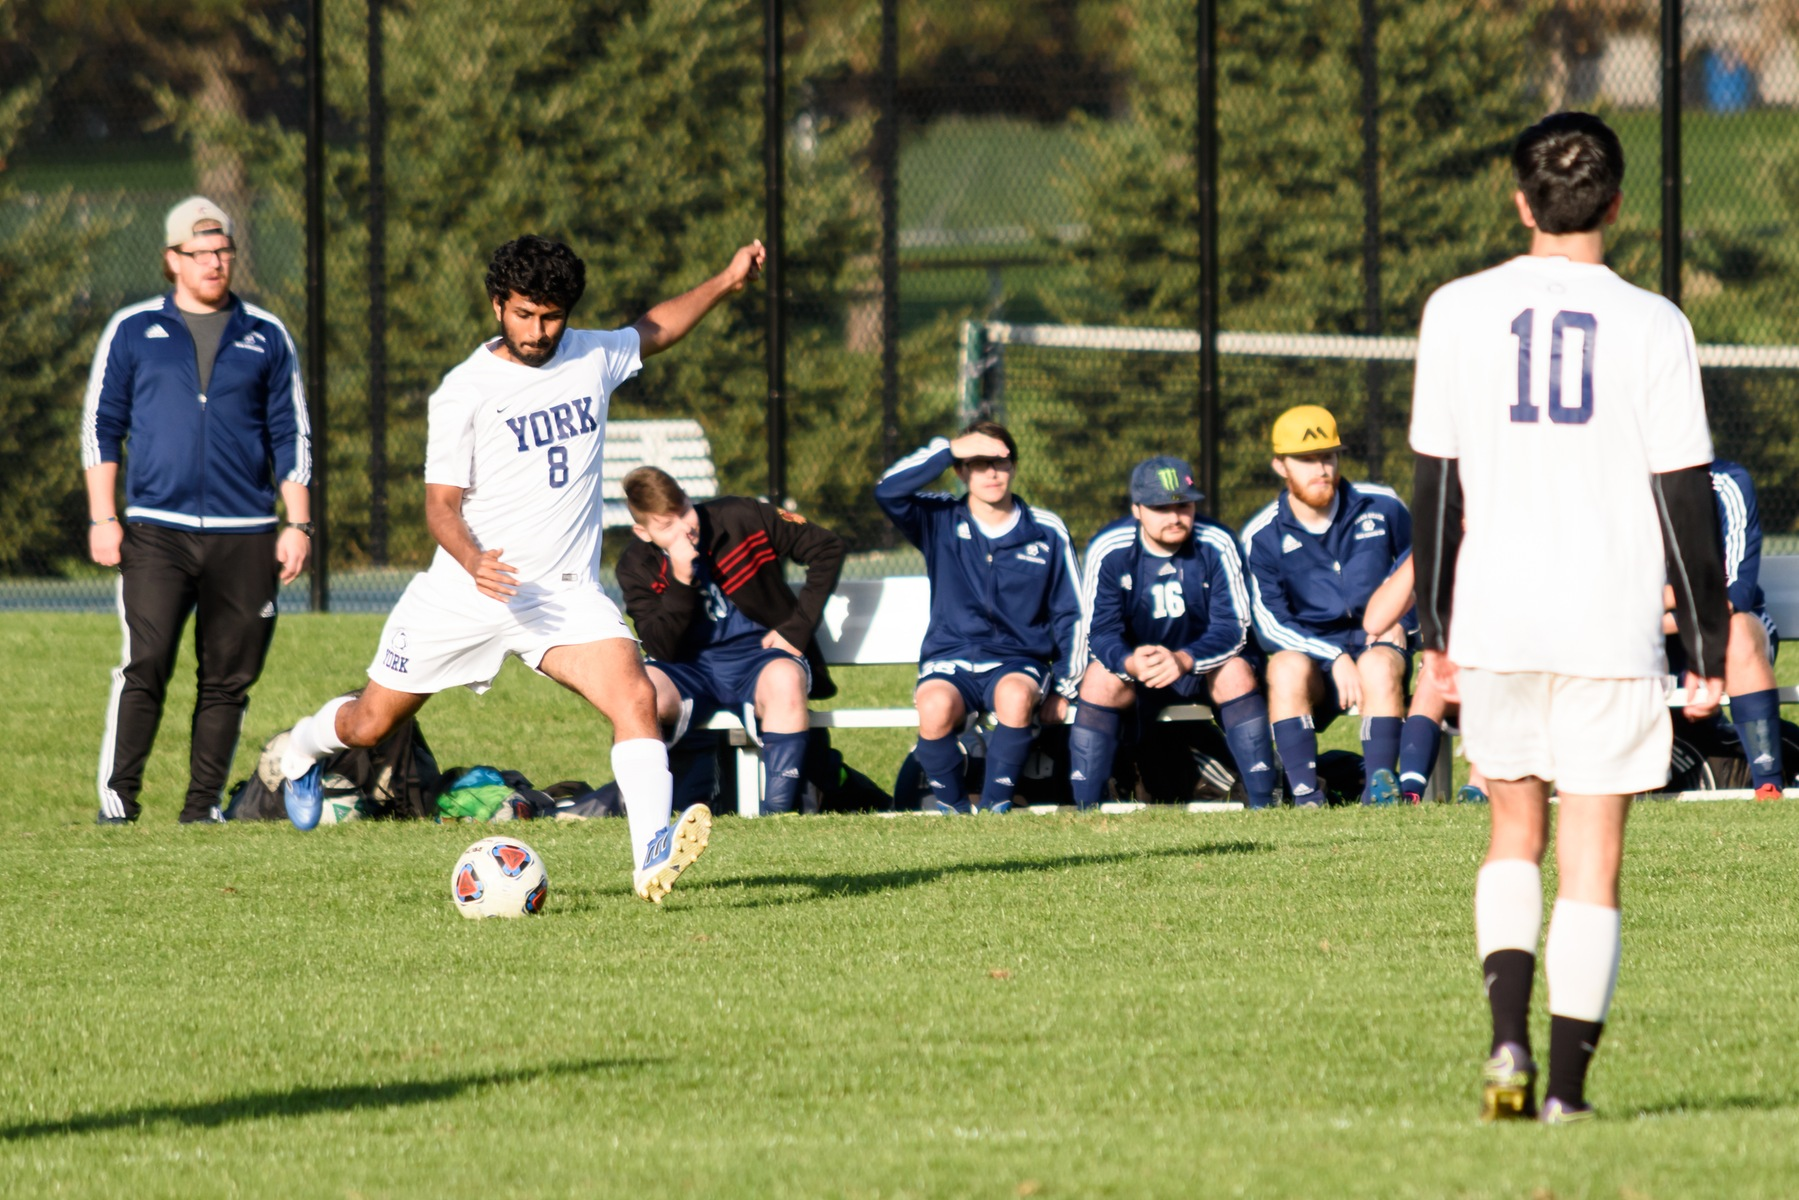 Nityant Rai (8) goes for ball during a Penn State University Athletic Conference quarterfinal game on Wednesday, Oct. 25, at Penn State York. York fell to Penn State New Kensington 2-1 in a hard-fought battle.